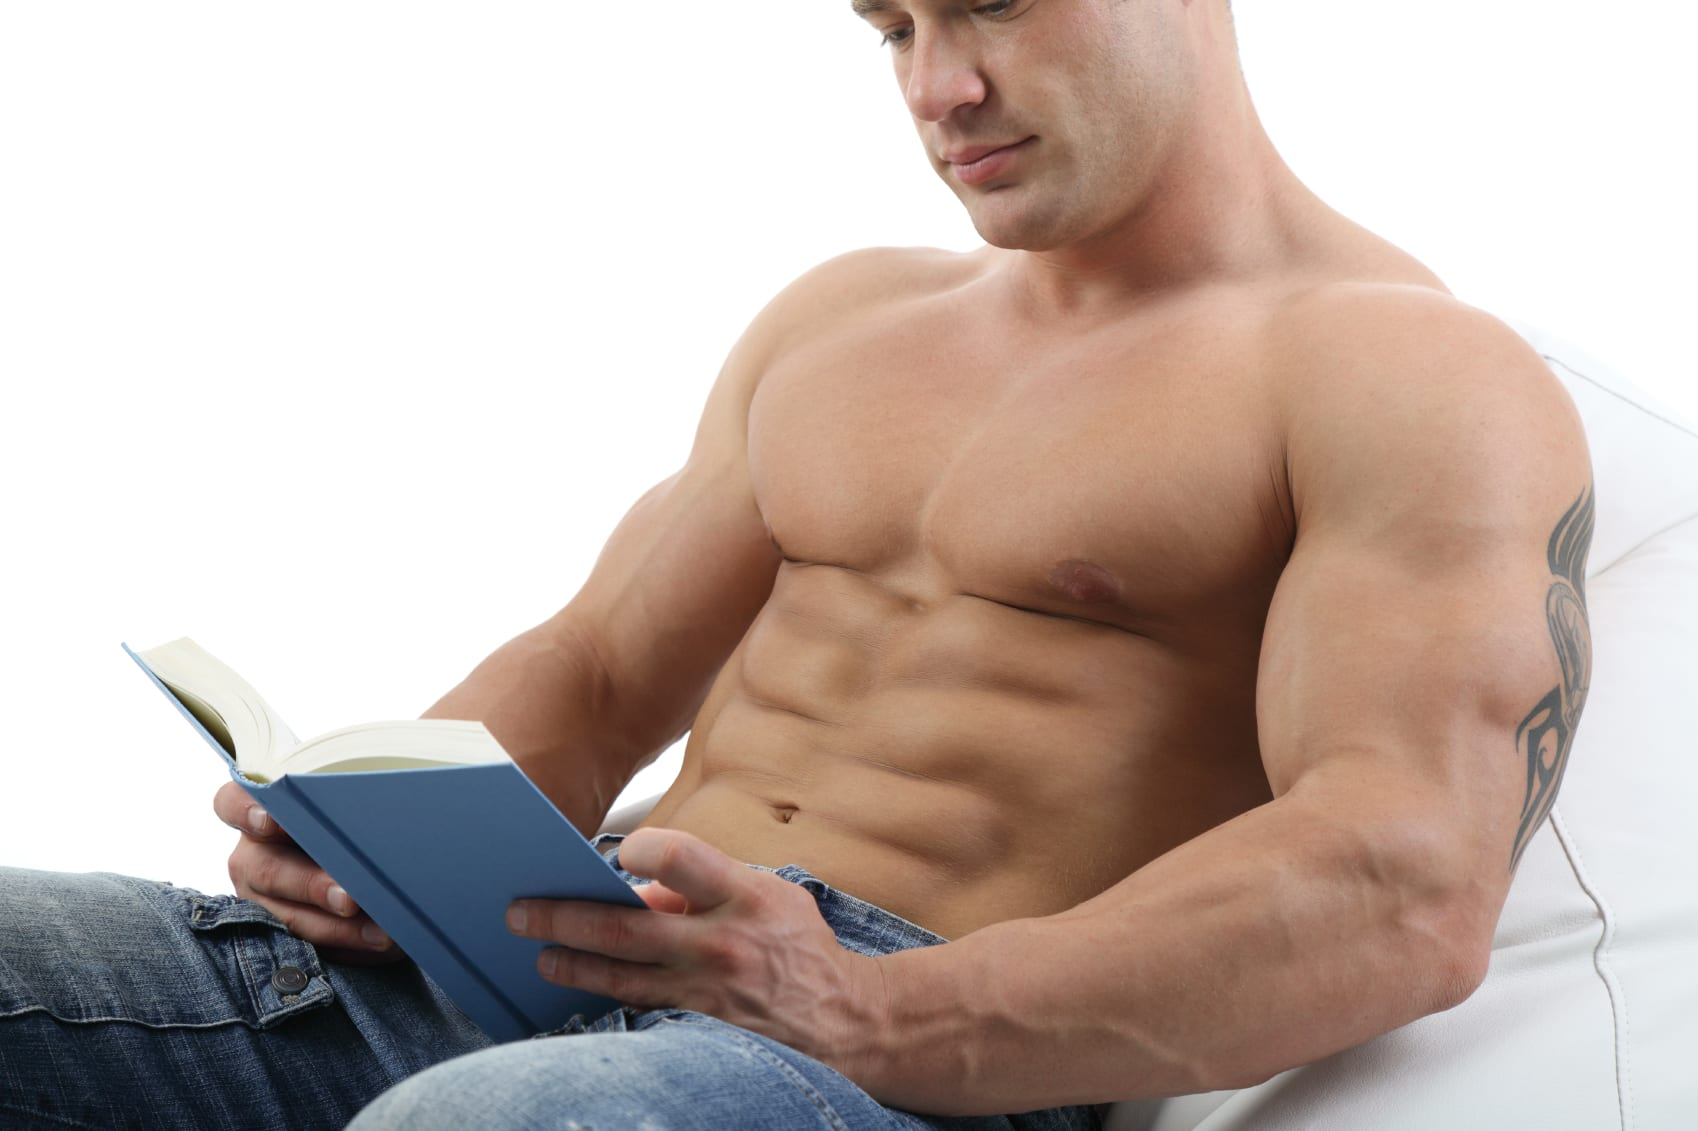 10 Awesome Bodybuilding Books You Should Read to Maximize Your Bodybuilding Program – Stay Strong